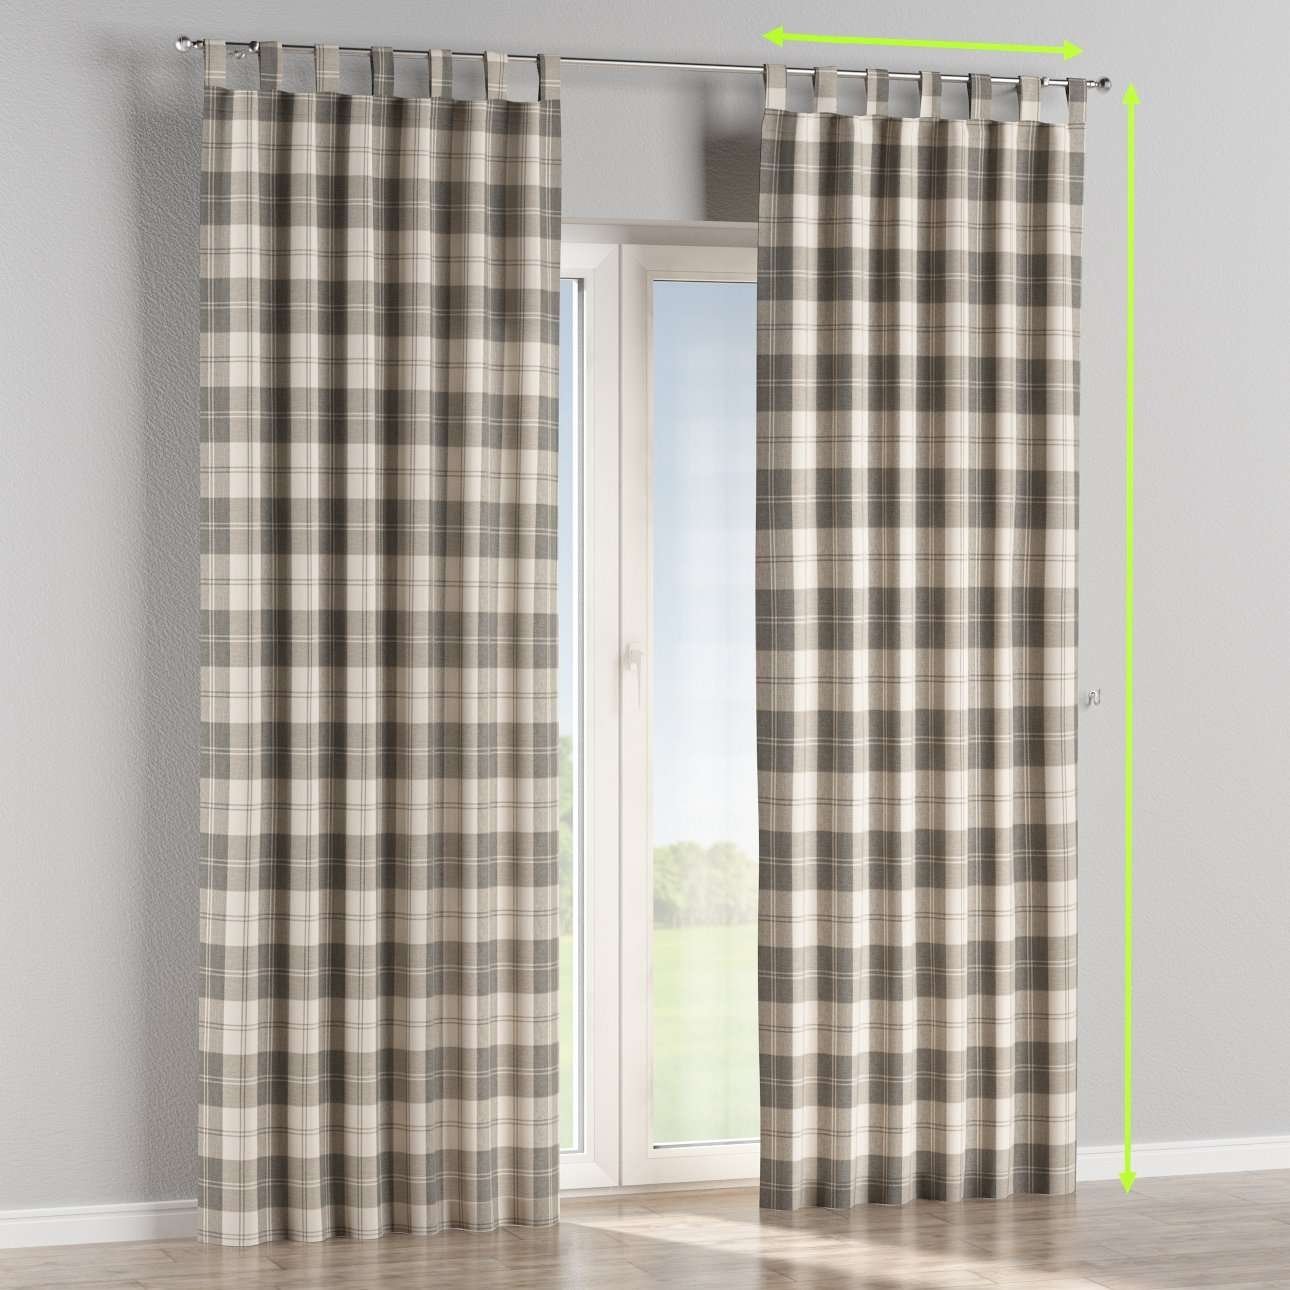 Tab top curtains in collection Edinburgh, fabric: 115-79